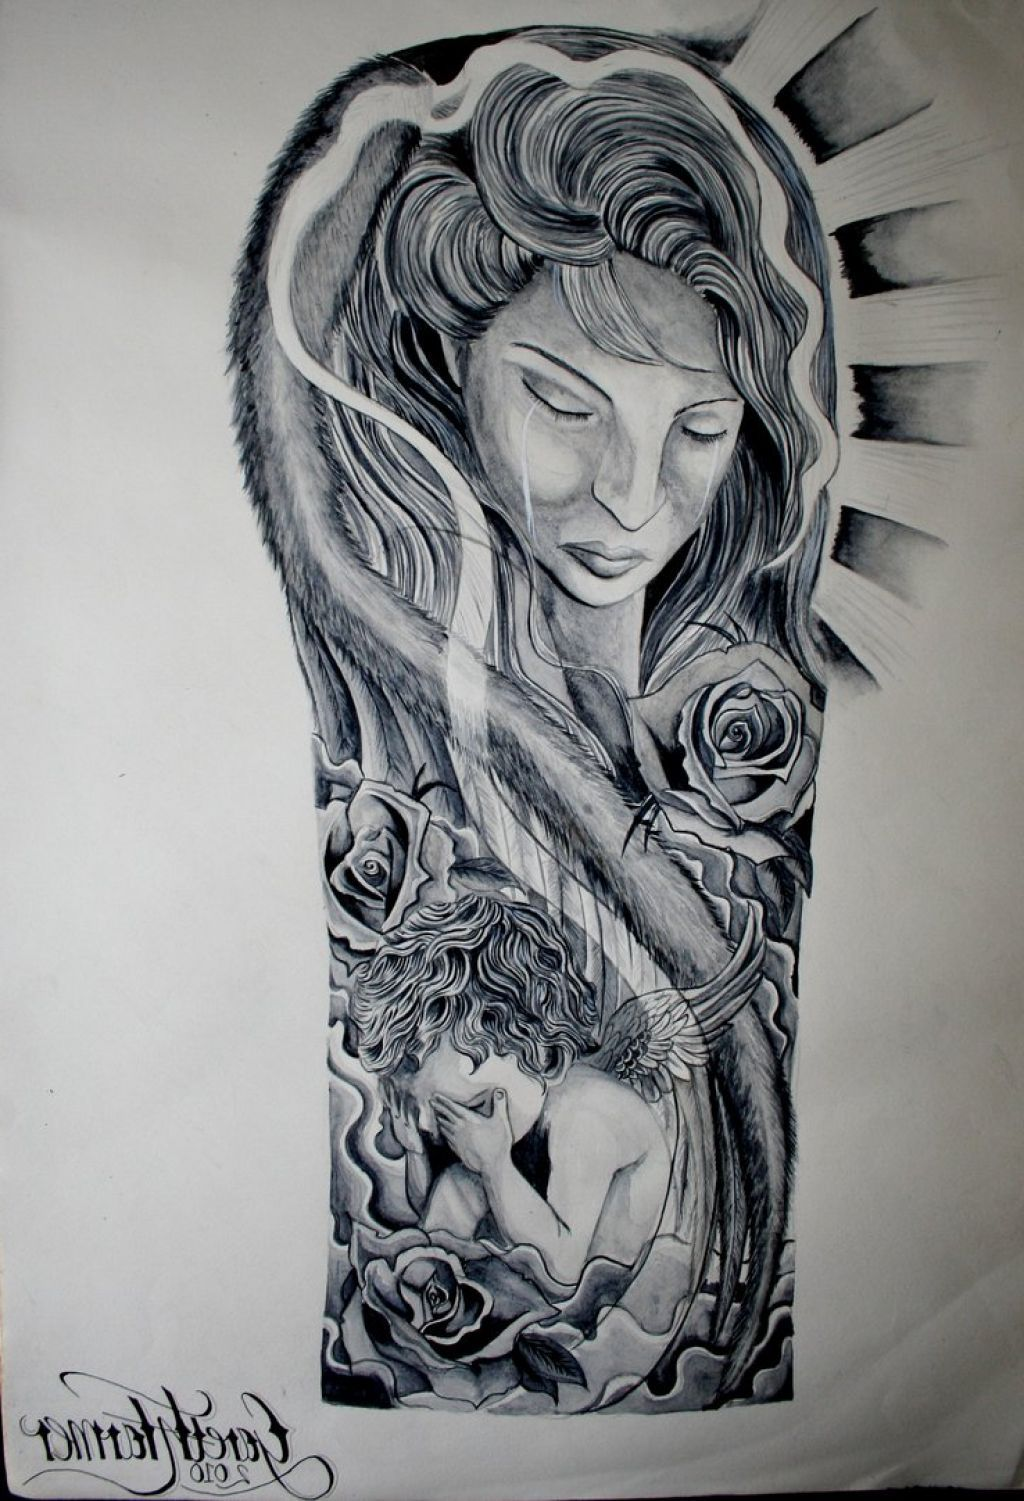 45 Awesome Half Sleeve Tattoo Designs 2017 - IdeaStand